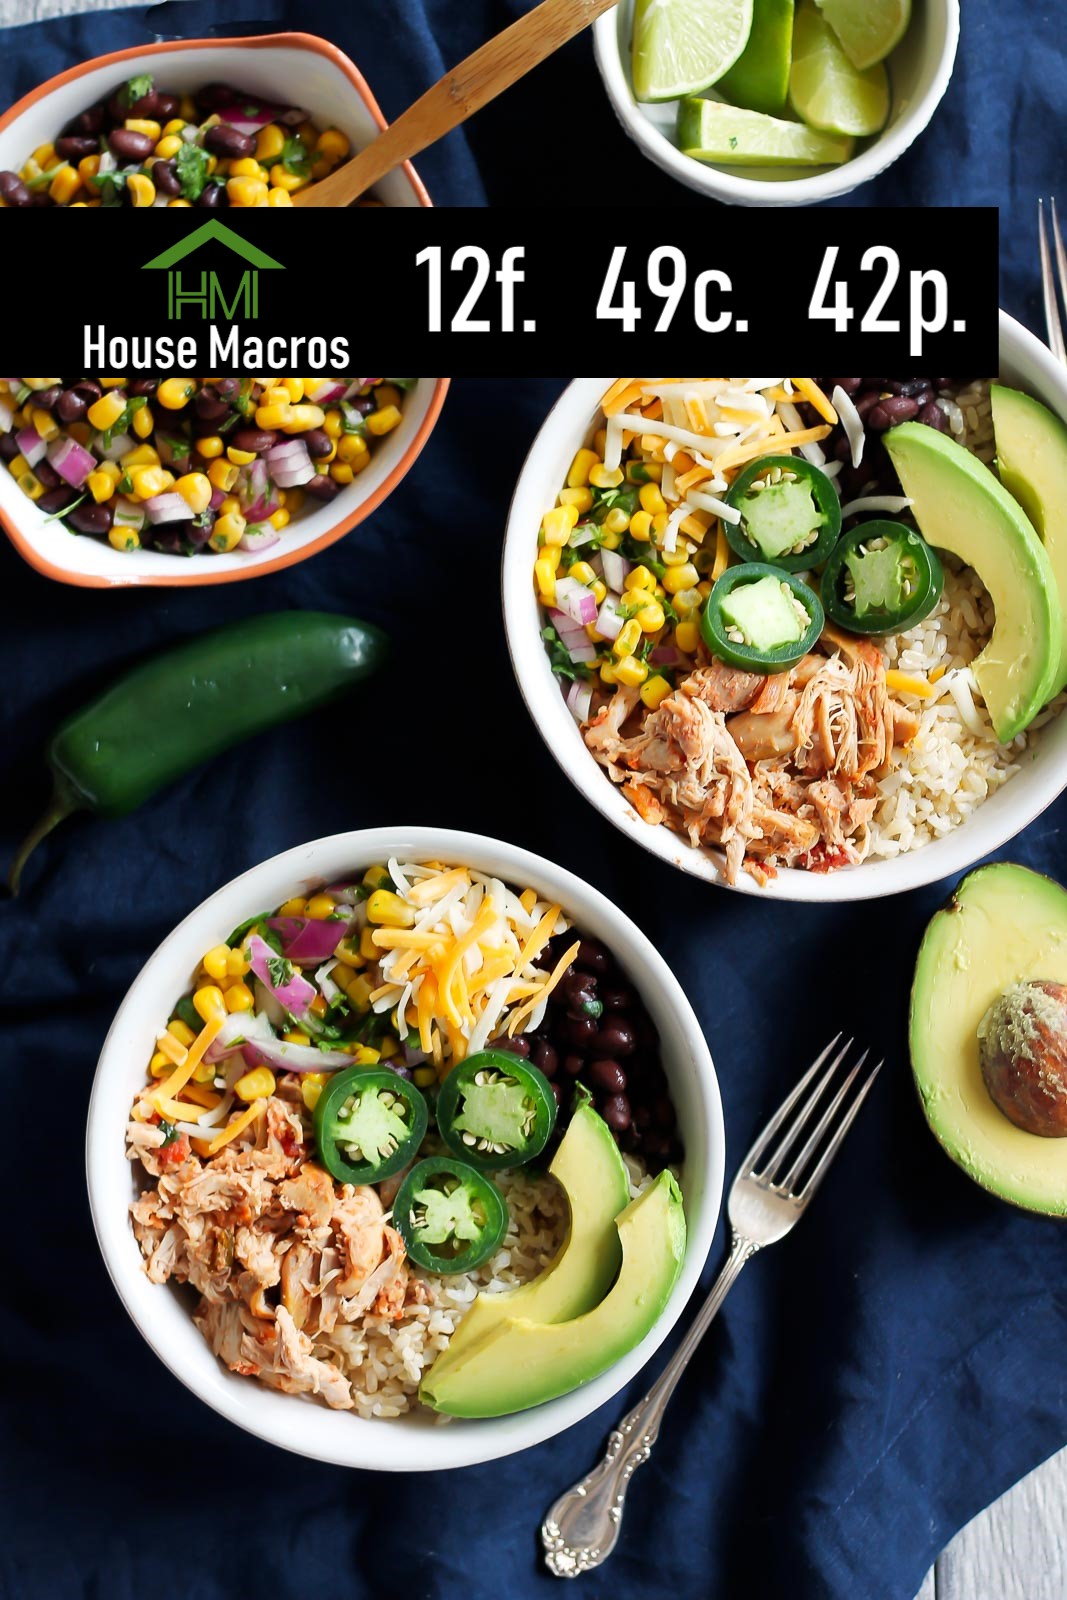 Nutrition Information    Serves: 4    Serving Size: 1 bowl    Calories: 507 / Fat: 12g / Carbs: 49g / Protein: 42g